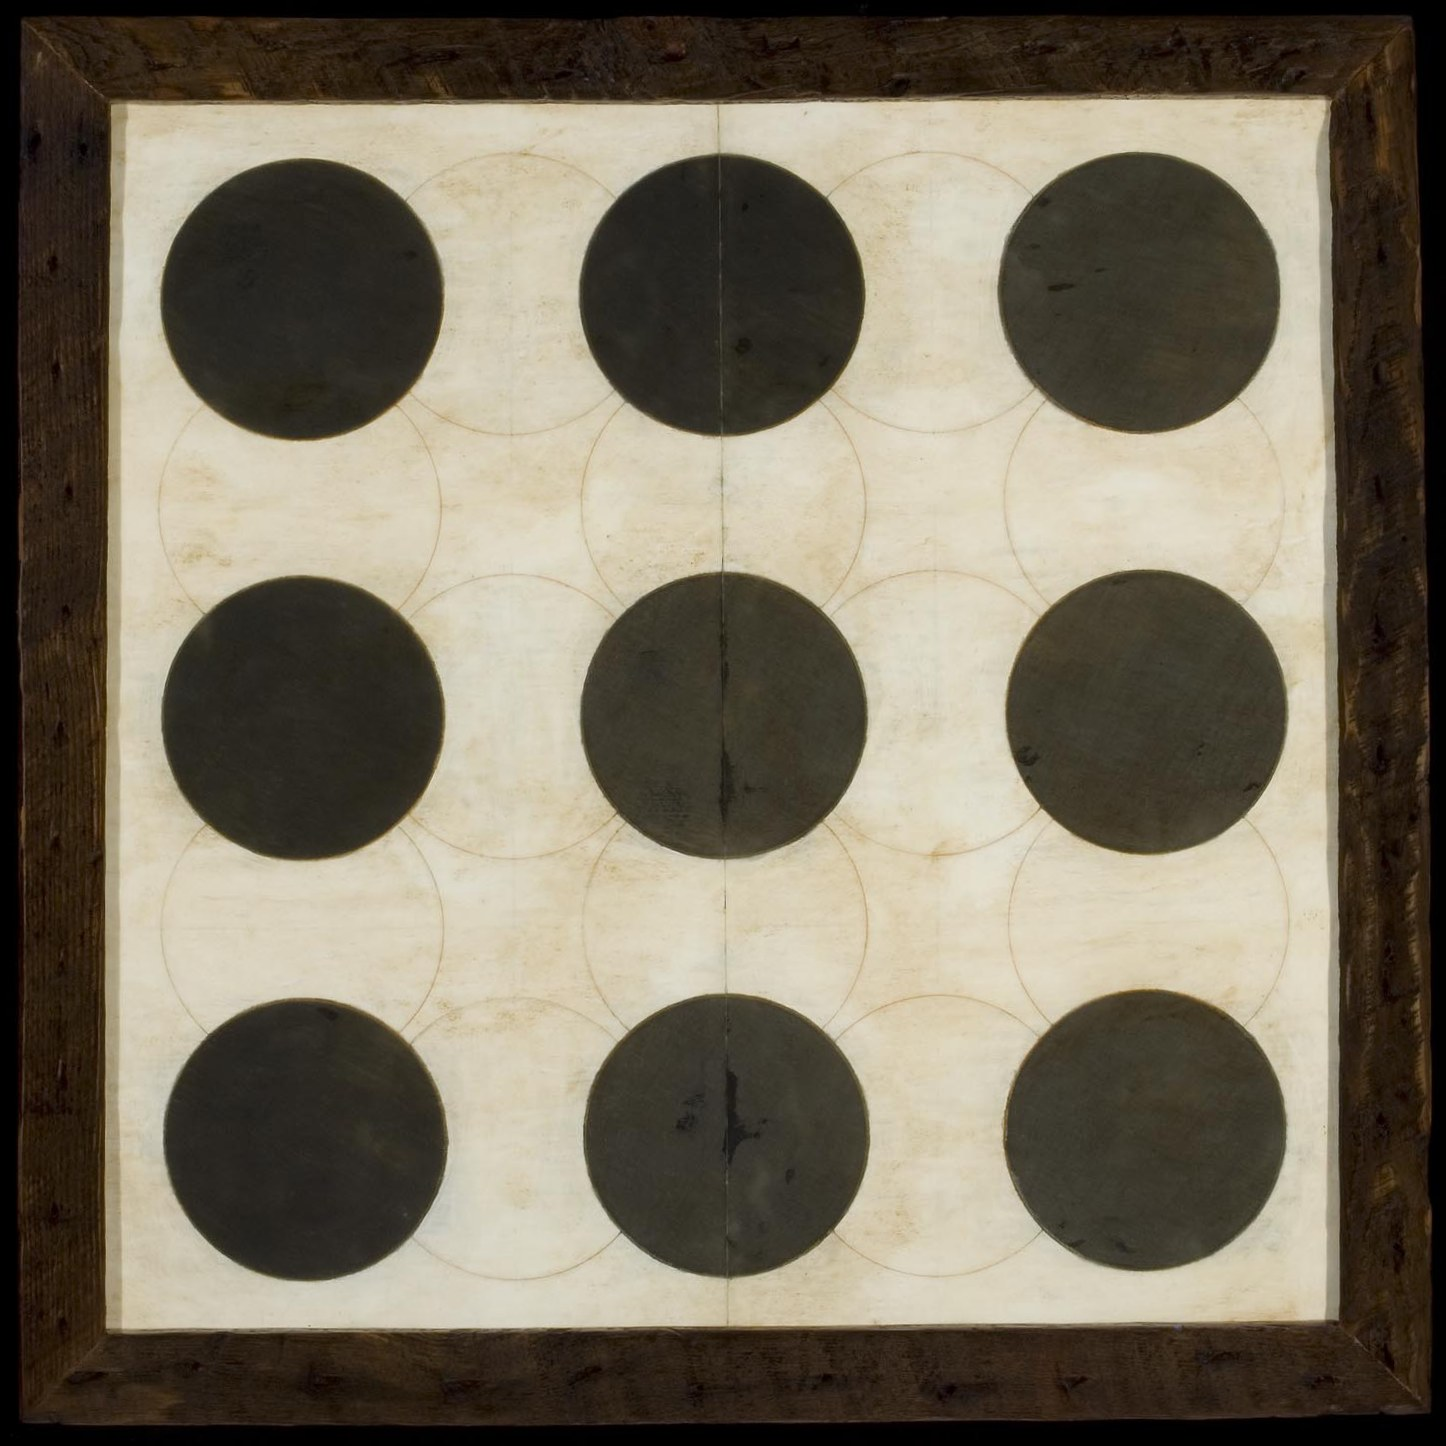 Marco Logsdon.Untitled 2608. Pencil, tempera, beeswax on Paper. 30 inches square